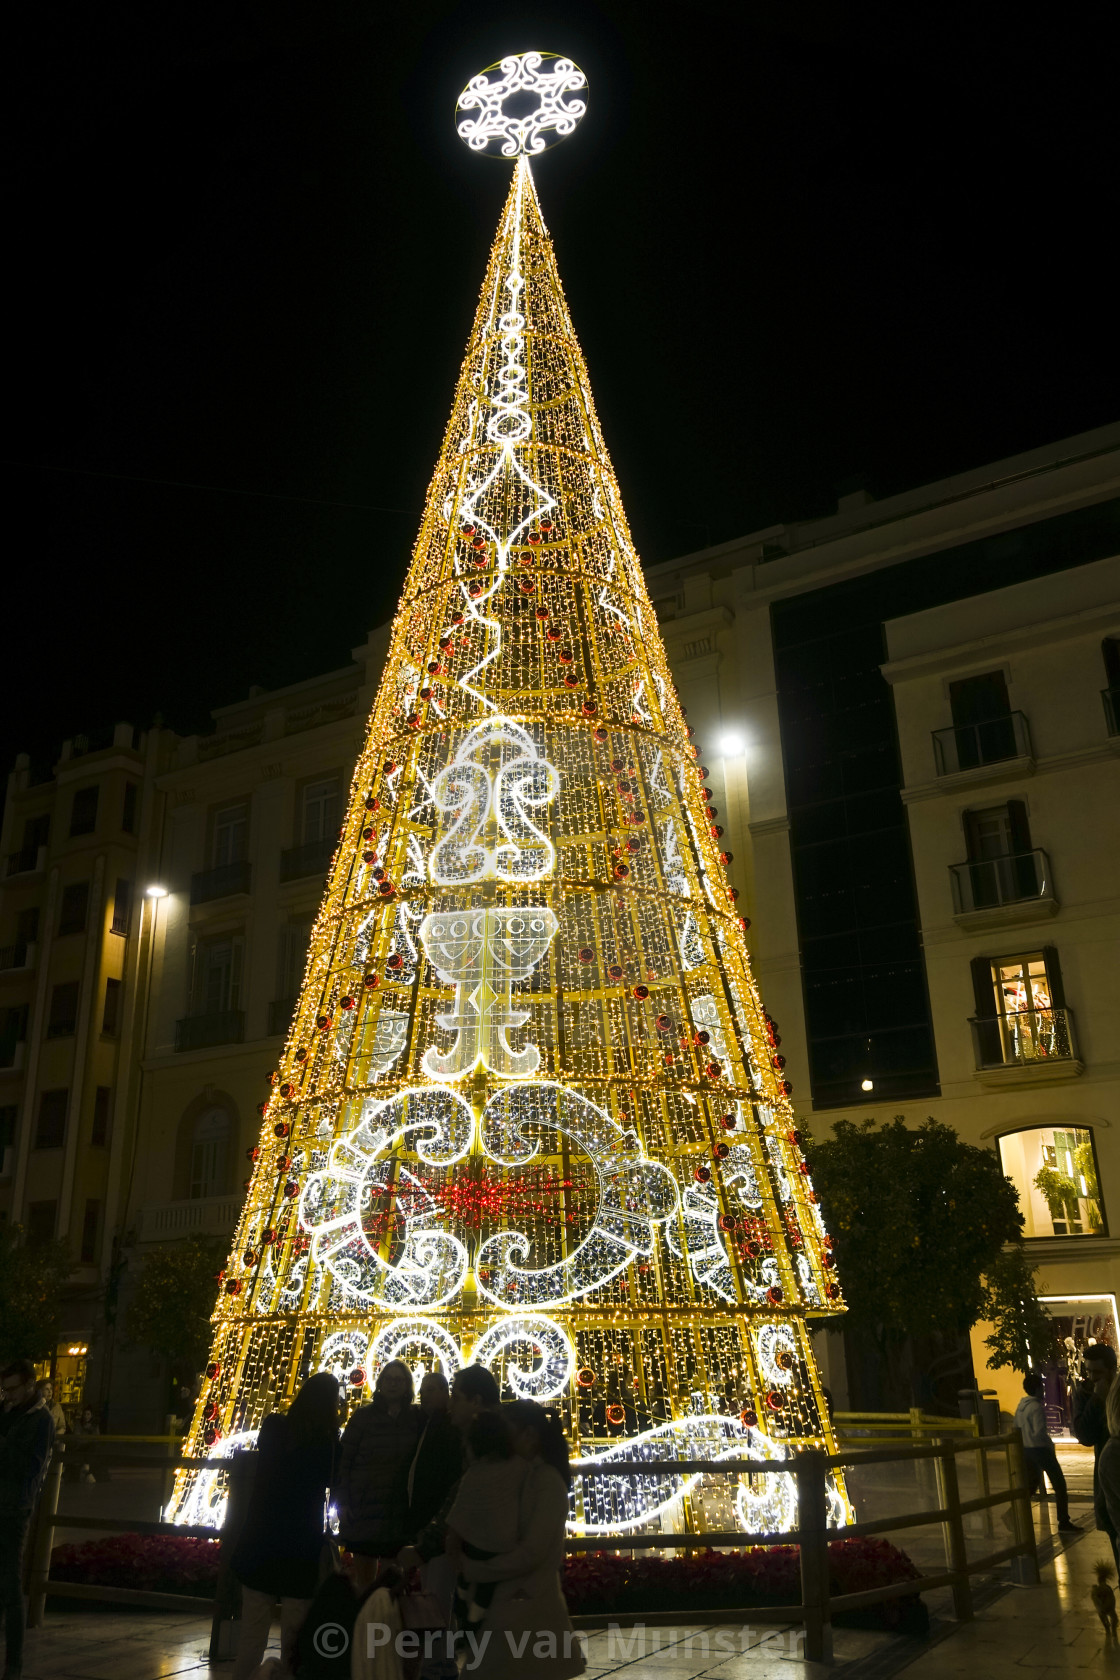 """Christmas lights decorations, tree, Calle Larios, Malaga city, Andalusia, Spain"